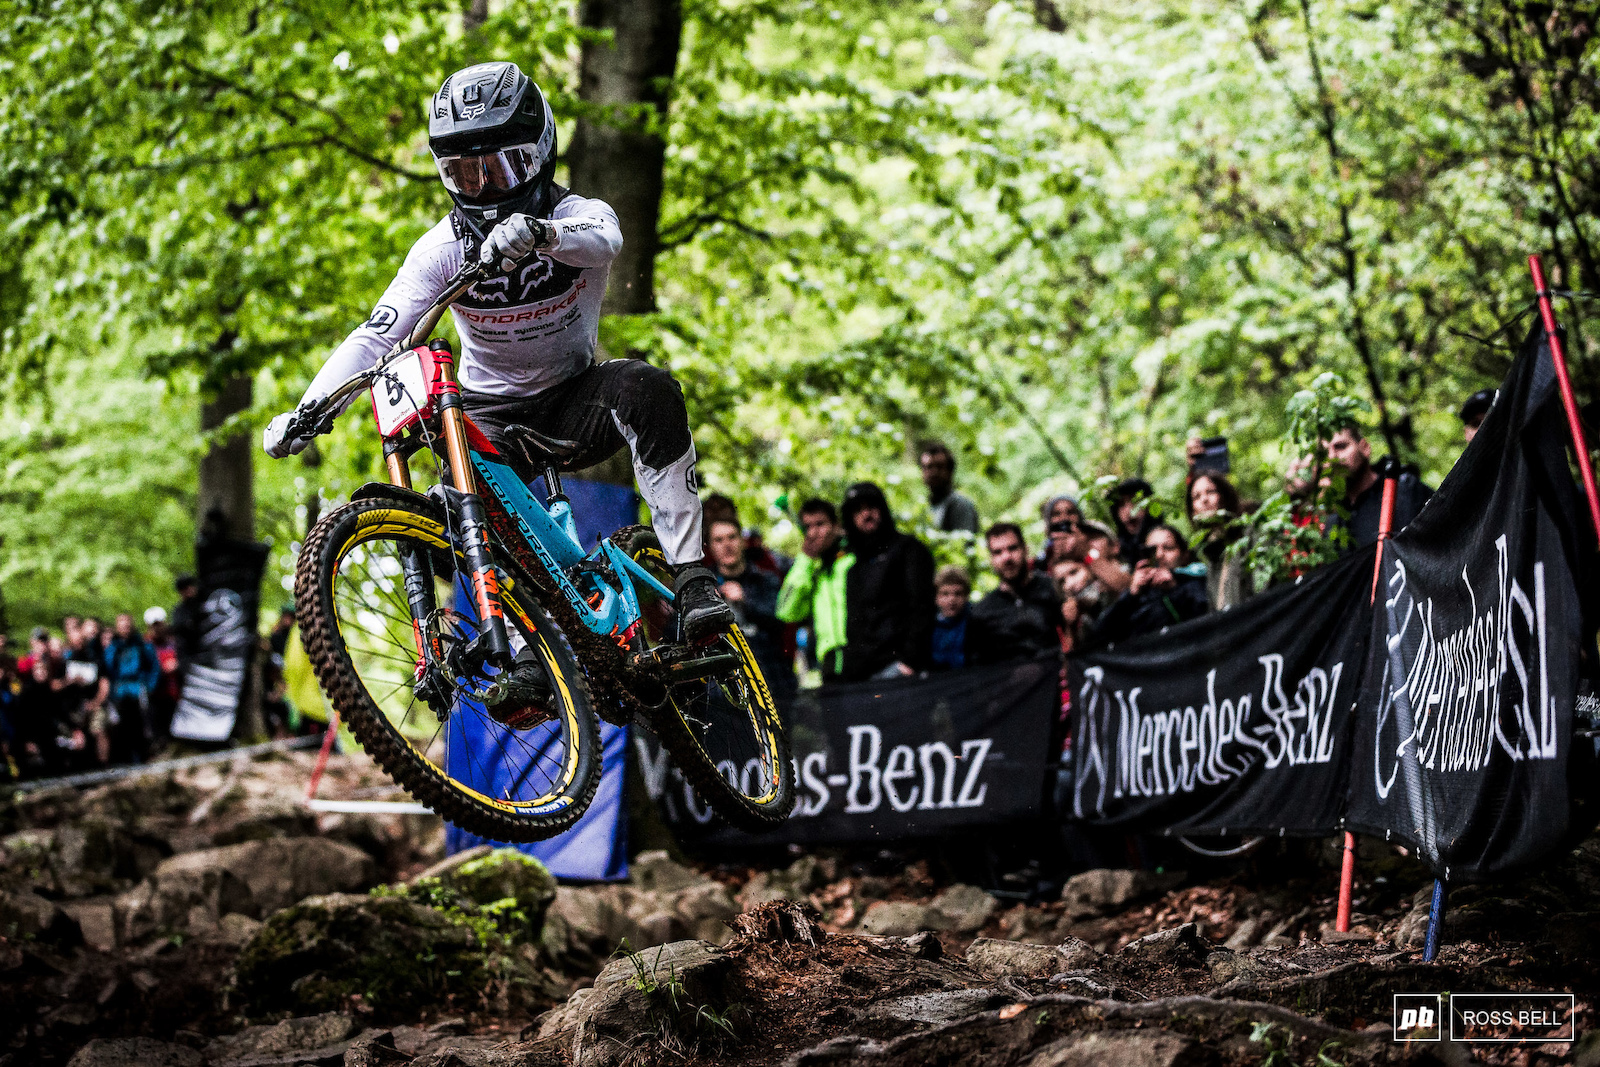 Laurie Greenland wasn t hesitating through the rock garden it showed in both his riding and qualifying result.